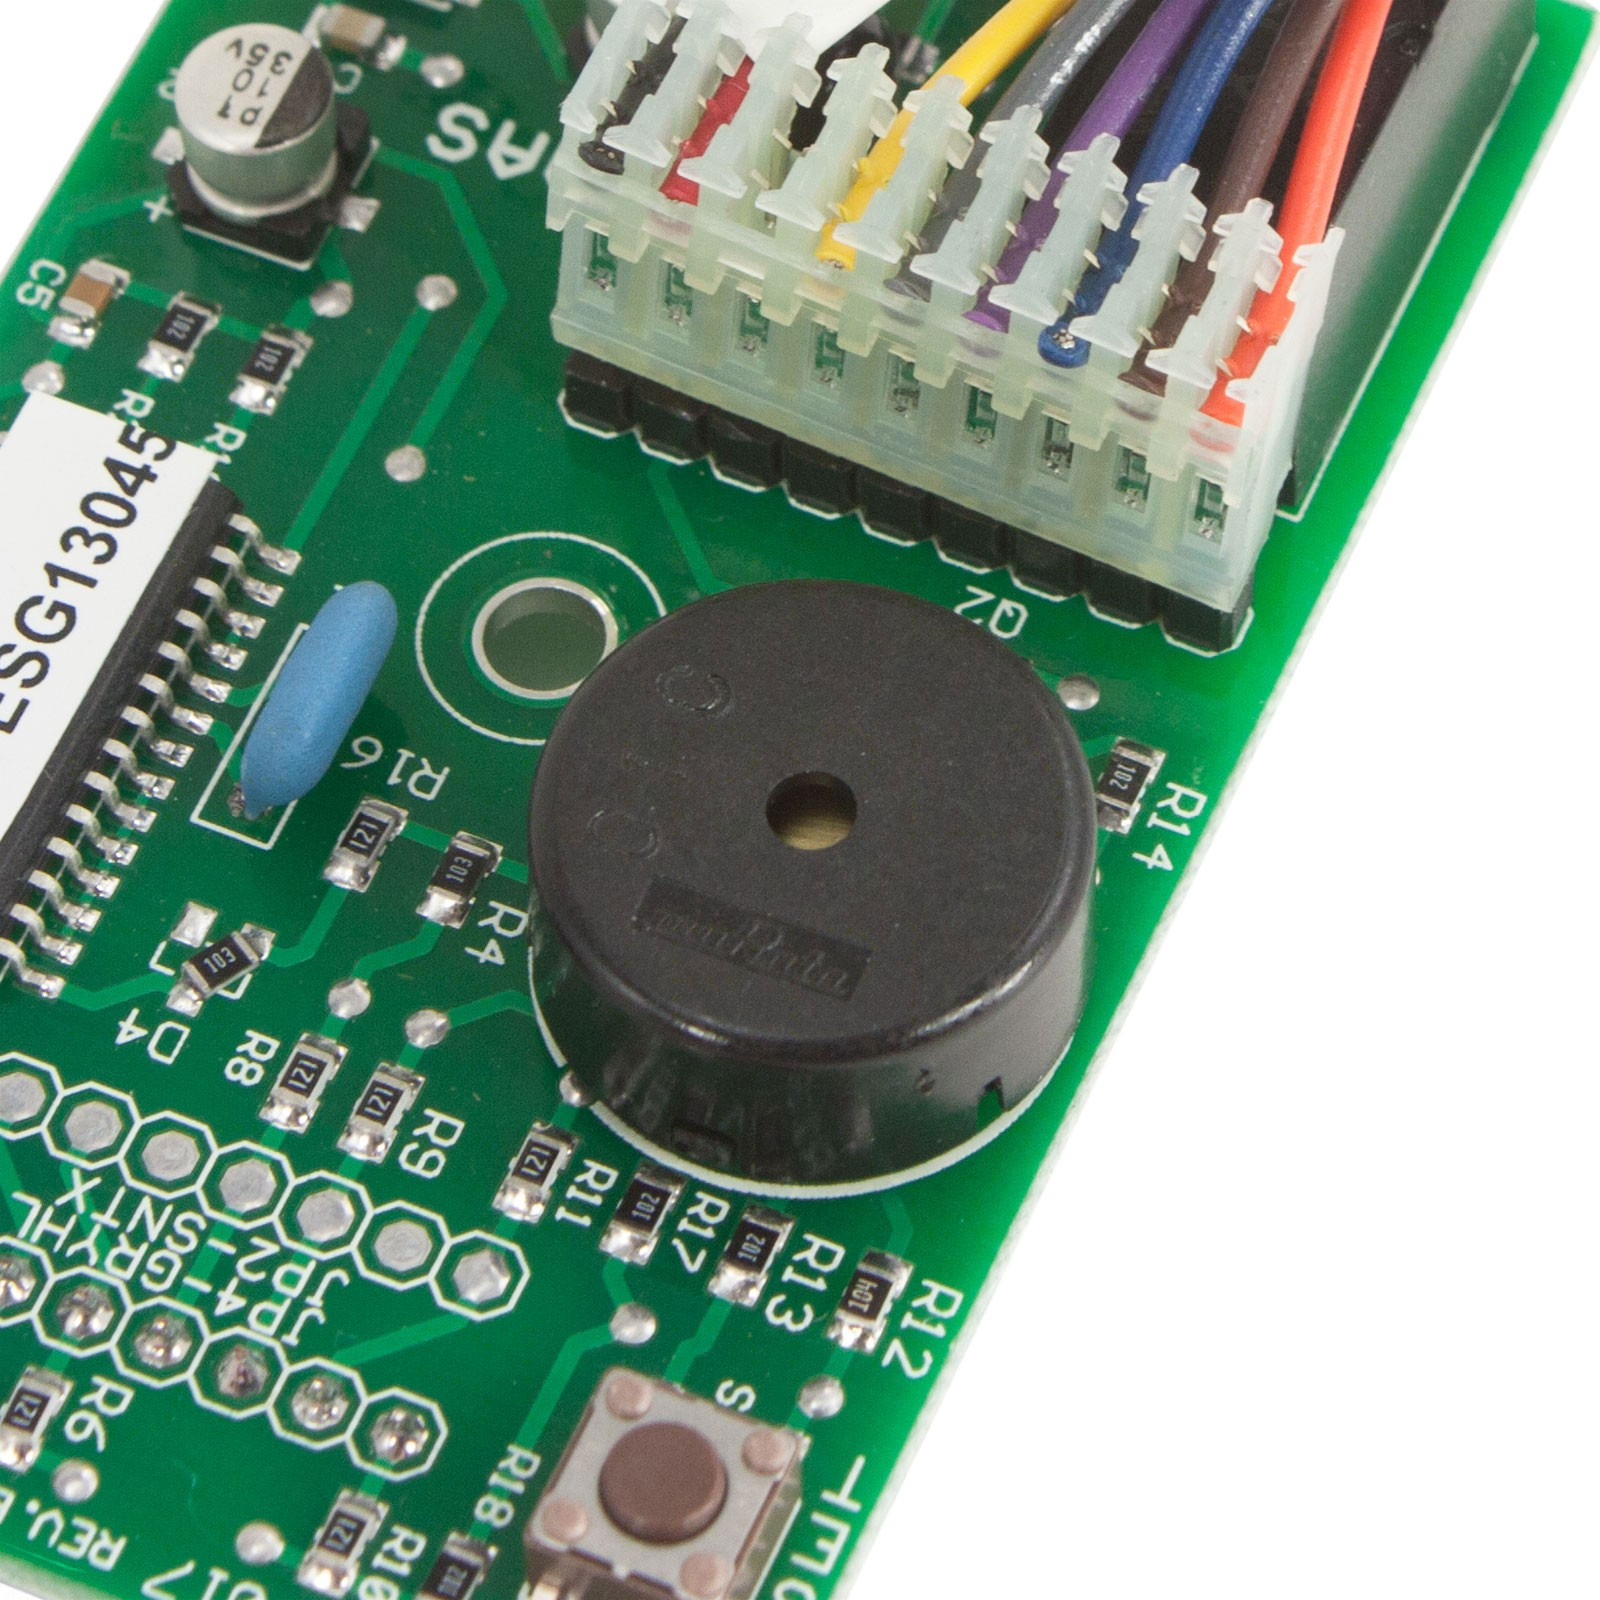 Circuit Board For 19 100sg Keypad Aas 30 017a G 100 Shop Electronic Penny Shown Scale Closeup